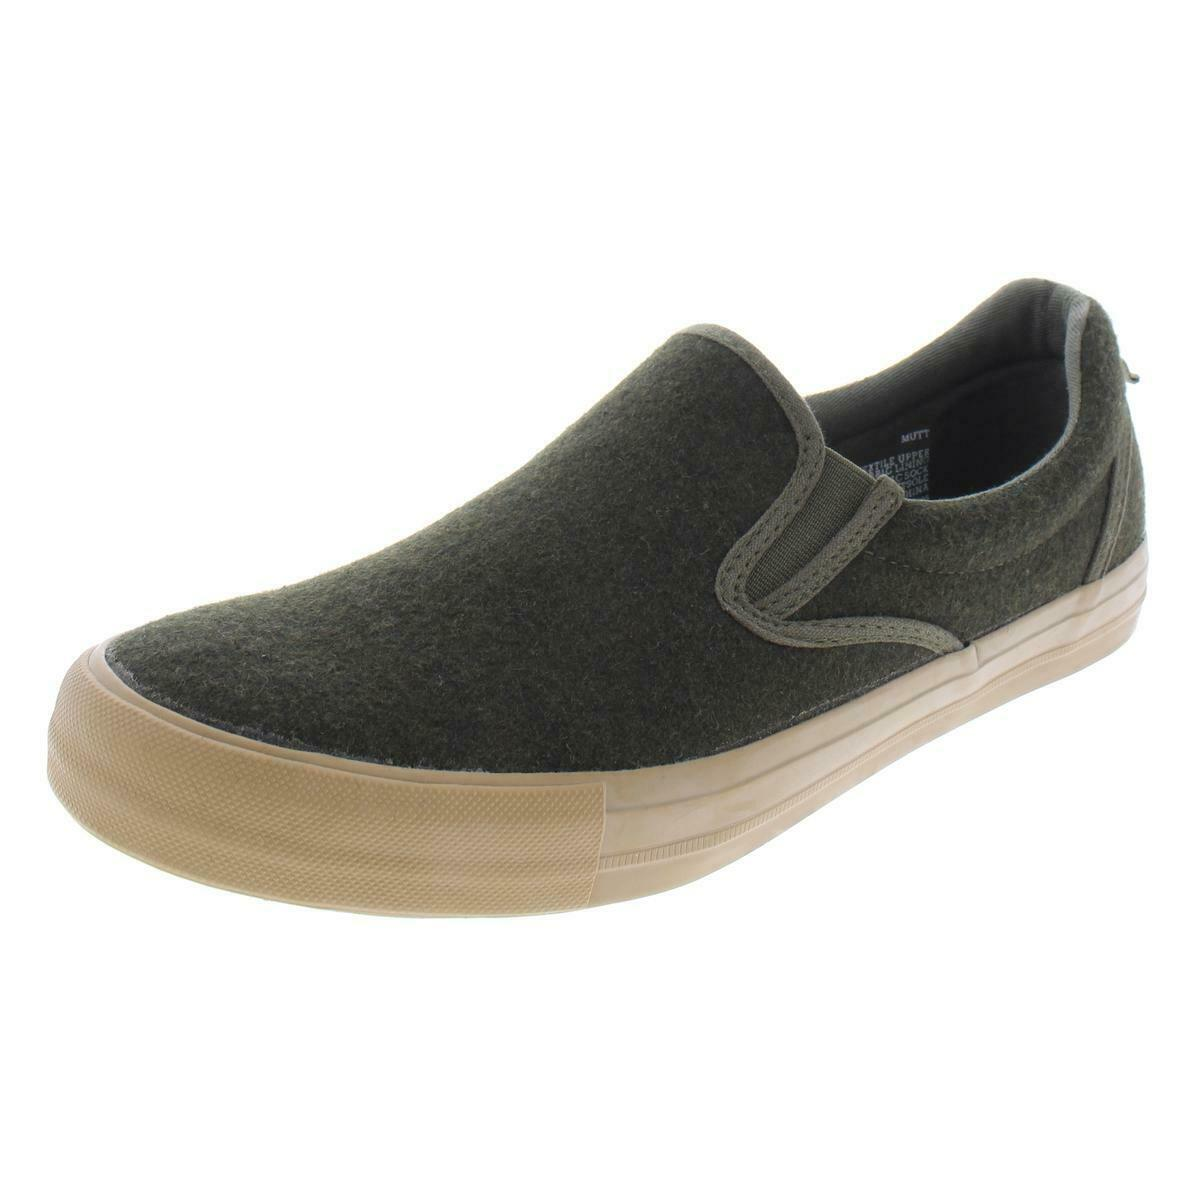 Steve Madden Mens Mutt Loafer Slip On Sneaker Casual Shoes BHFO 9992